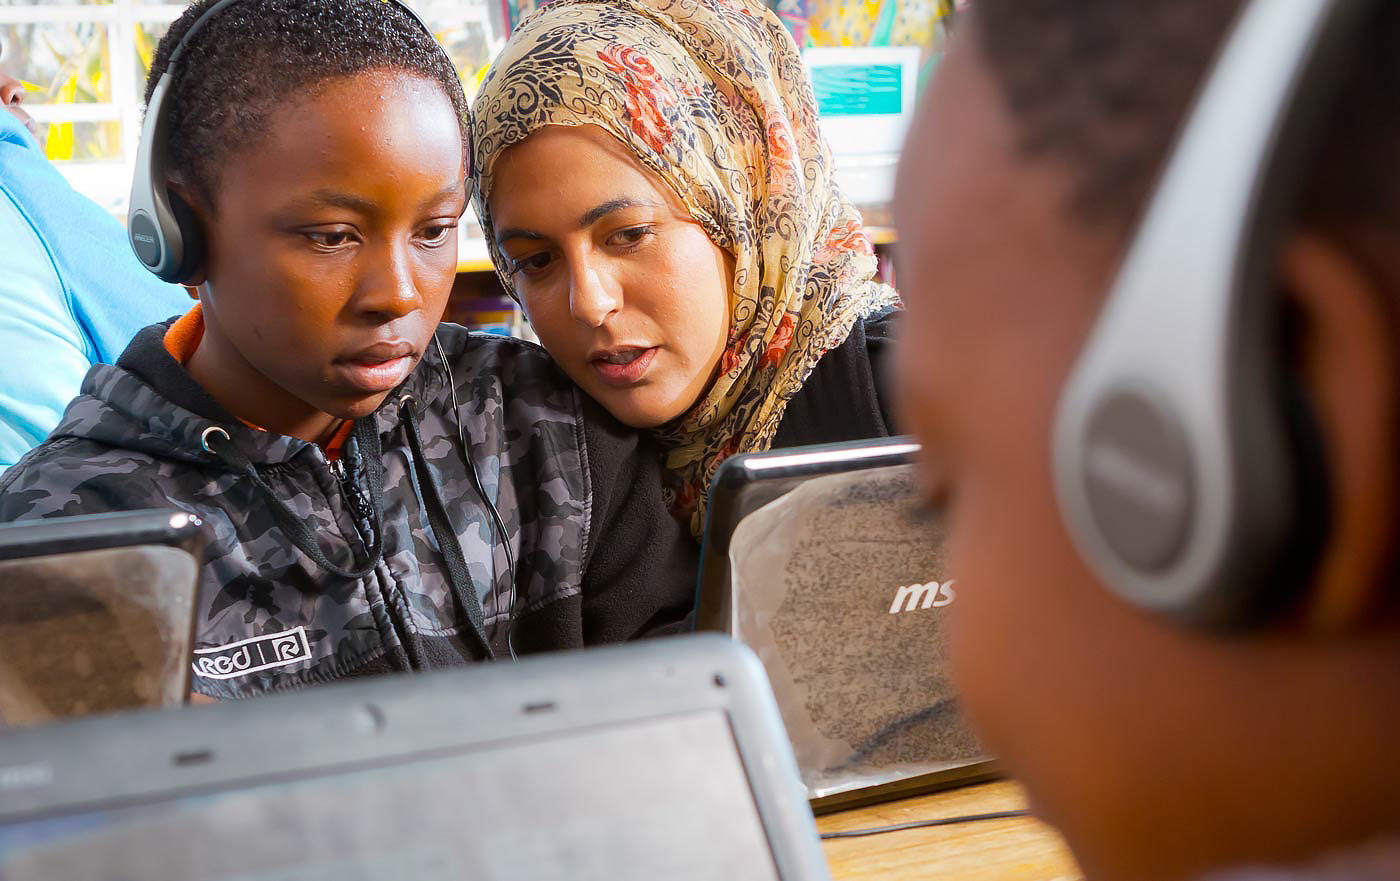 Educator instructs young student on laptops - Corporate social investment photography portfolio